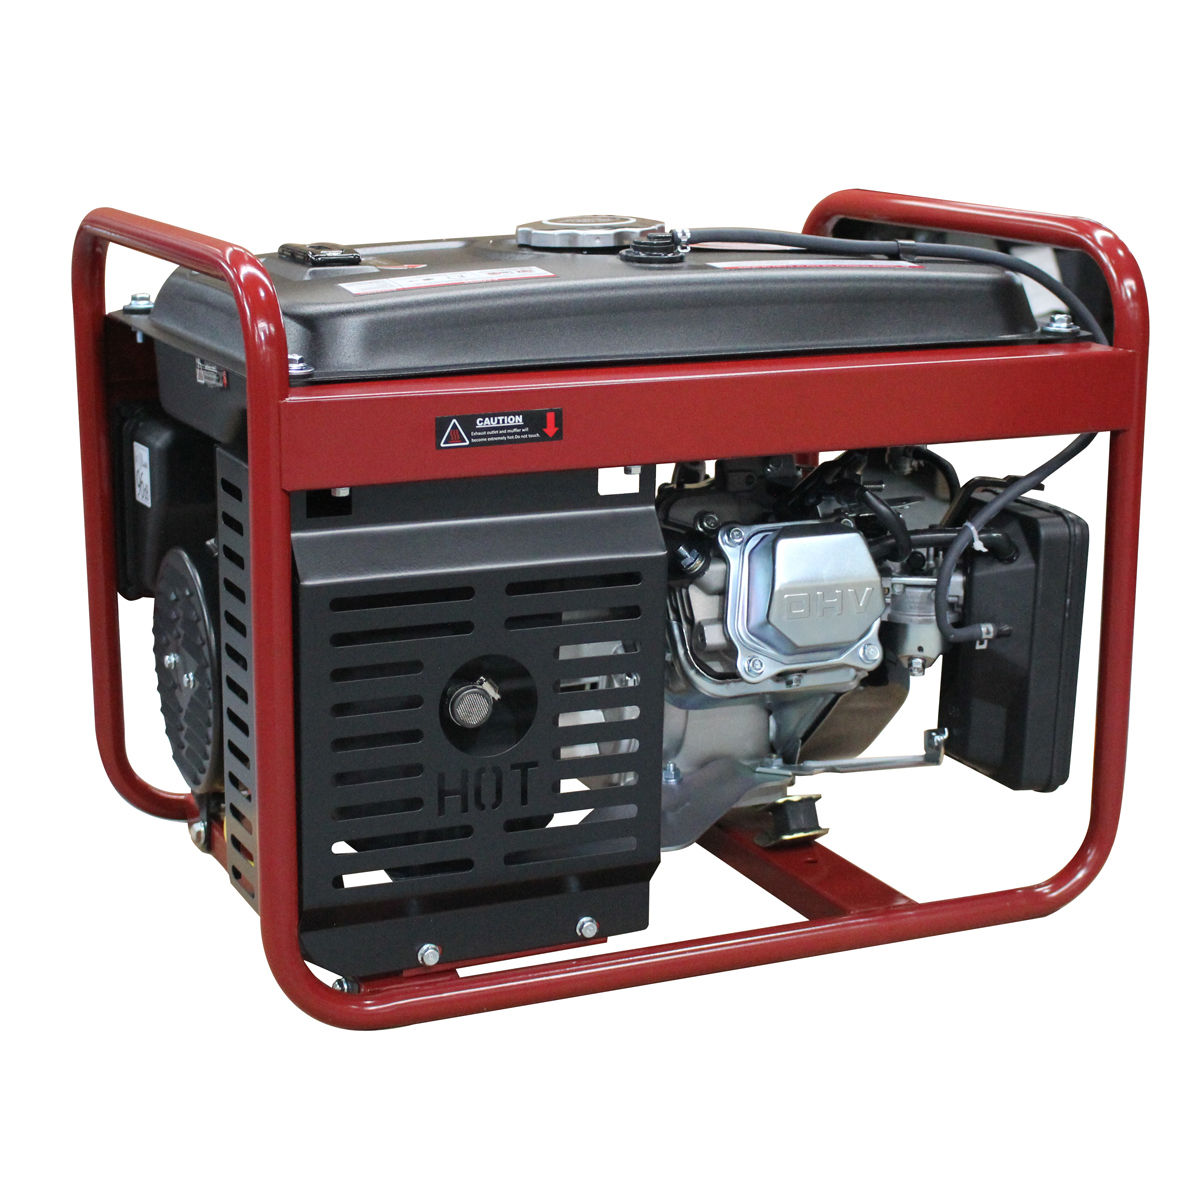 Goplus 4000W Gasoline Generator 4 Stroke 208cc Air Cooled Gas Portable EPA